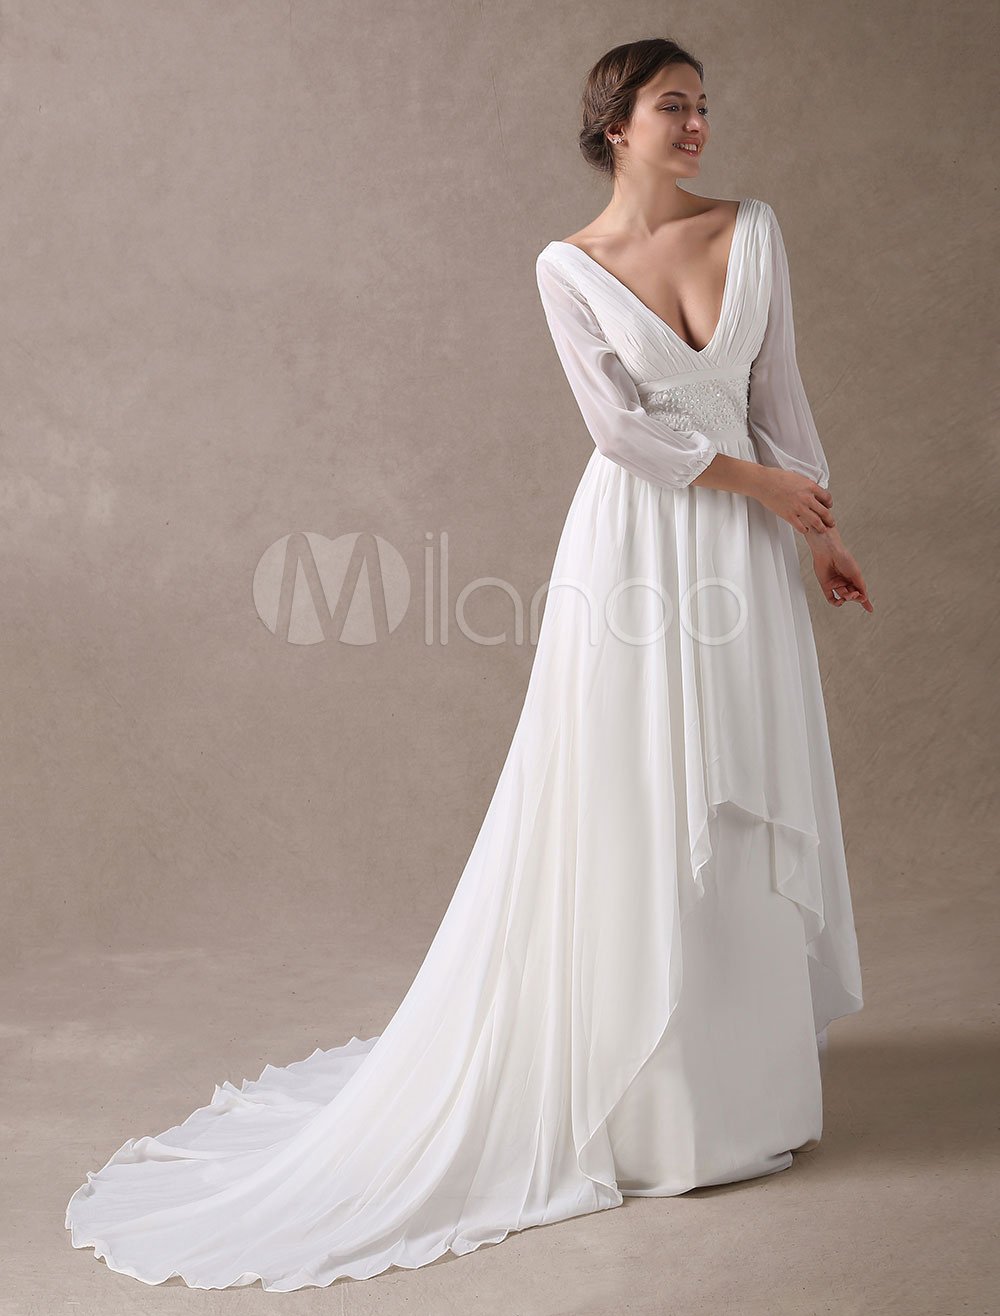 Pin On Wedding Dresses And Ideas [ 1316 x 1000 Pixel ]